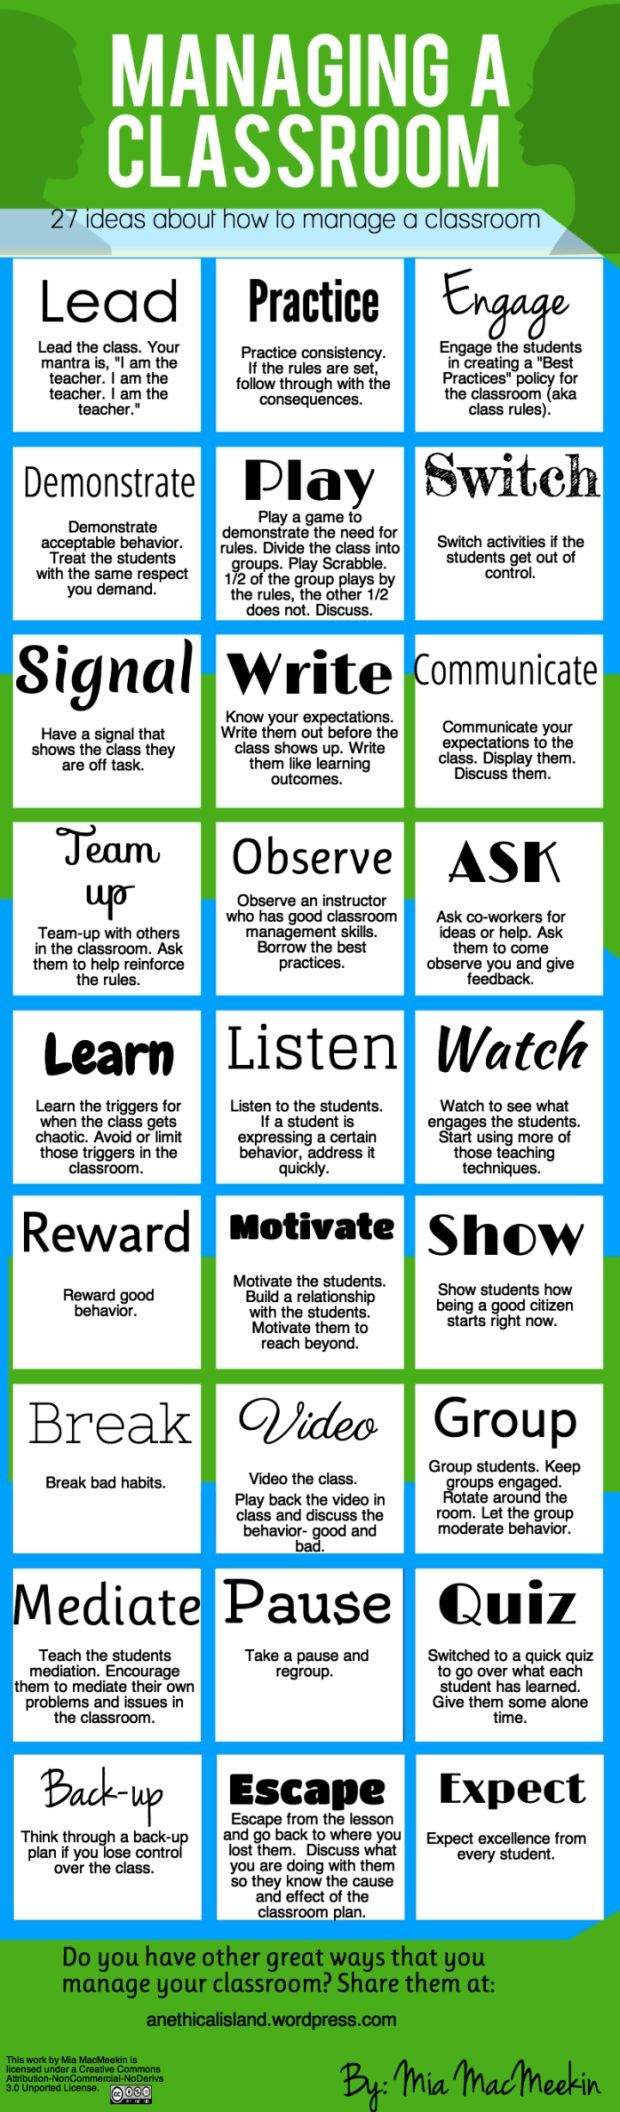 27 Tips For Effective Classroom Management - a great info graphic as a quick reference on how to be an effective teacher with classroom management: